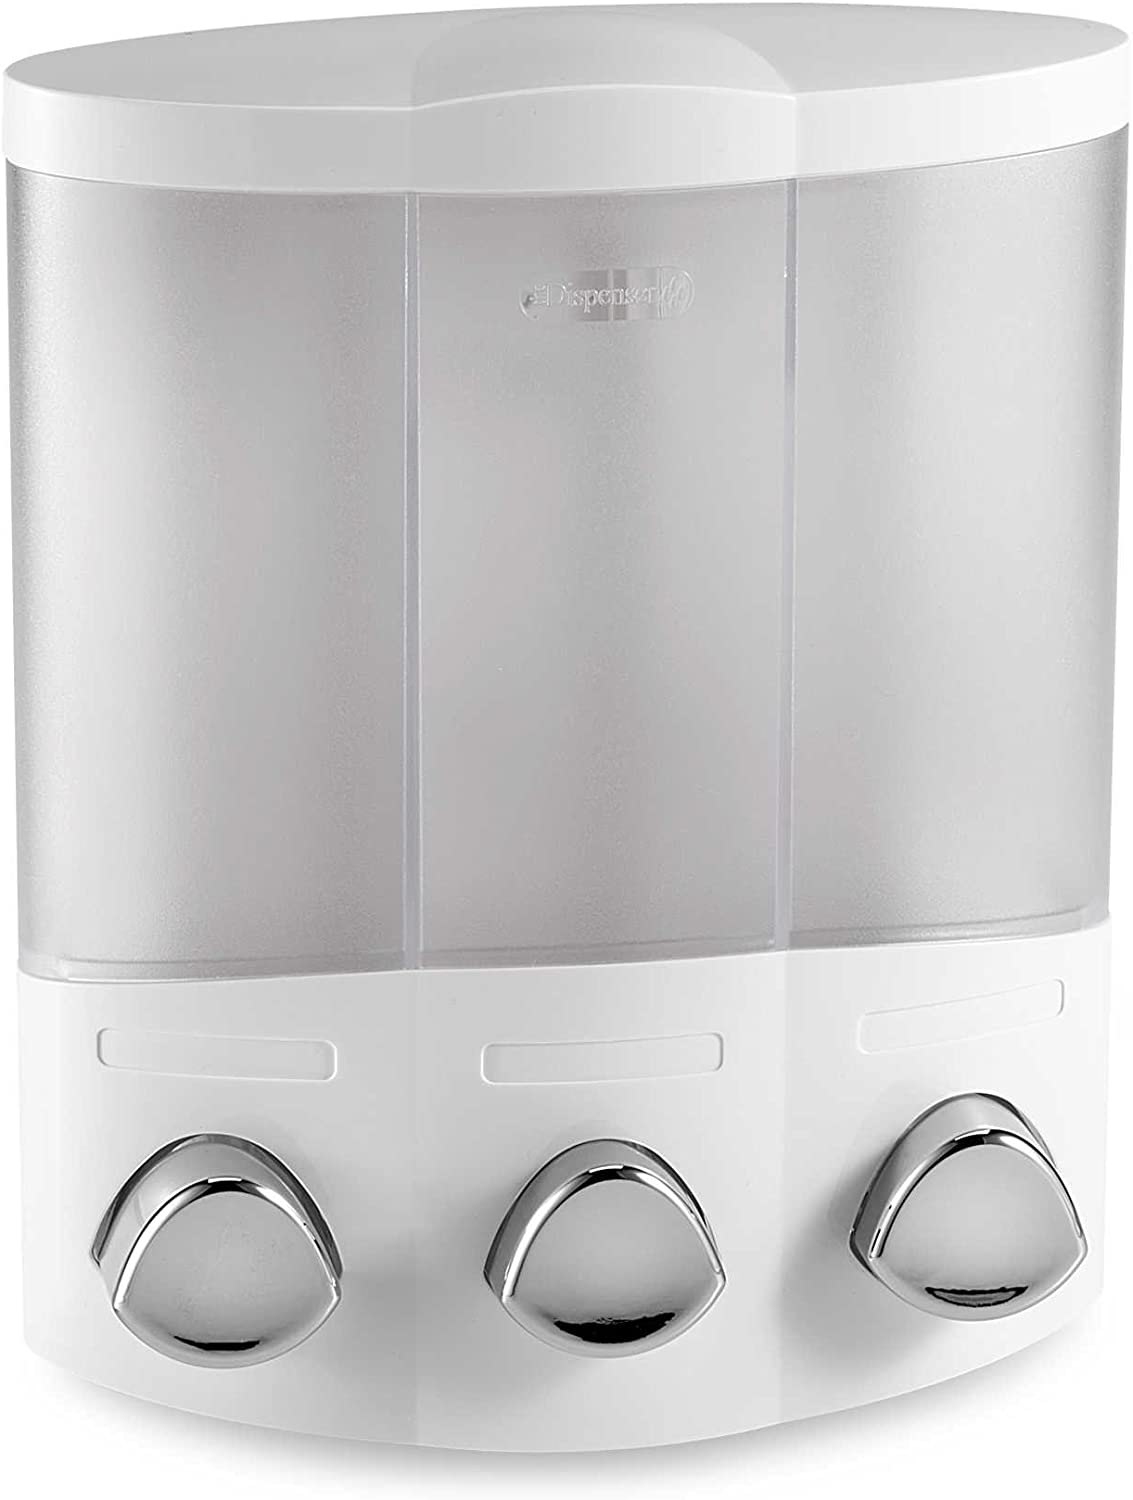 Clear Choice Dispenser Shower Purchase 5 popular